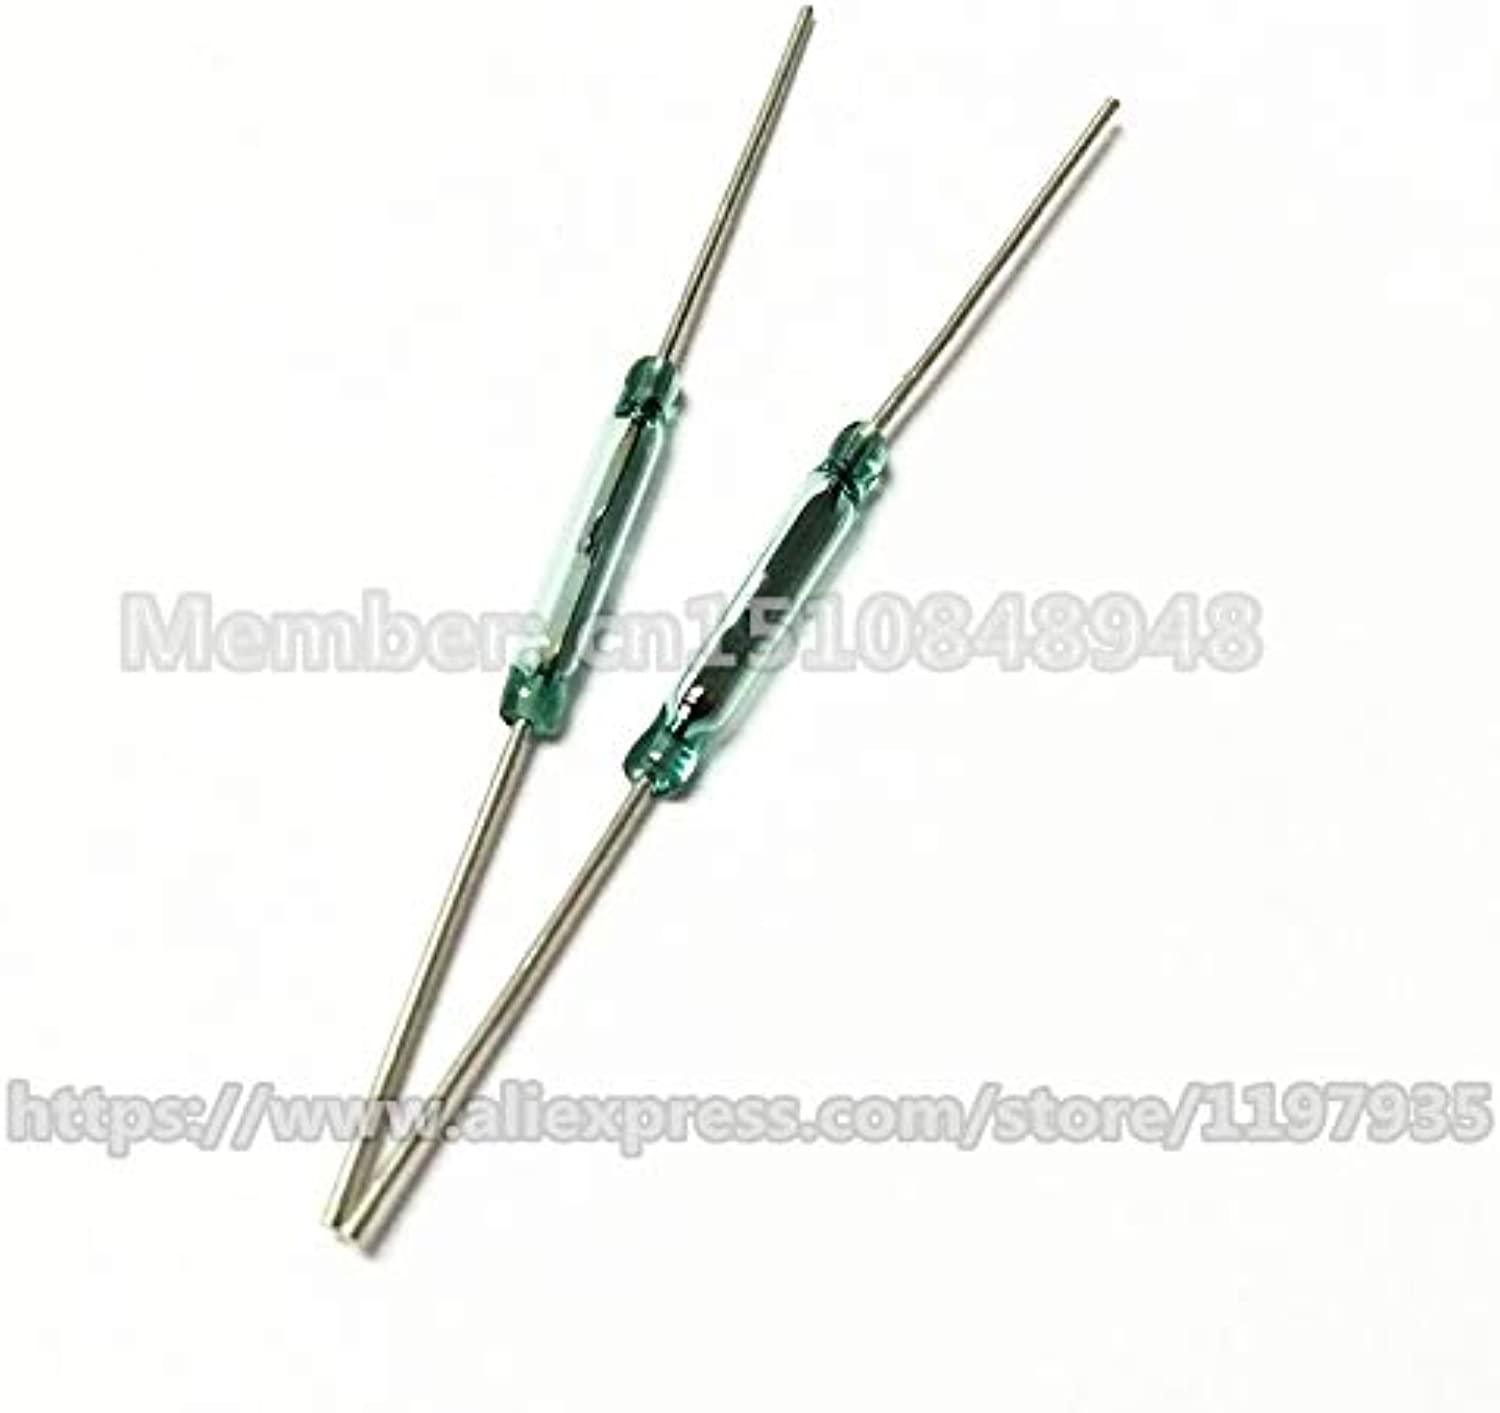 200 PCS Reed Switch 2 pin Magnetic Switch Normally Open 2X14MM